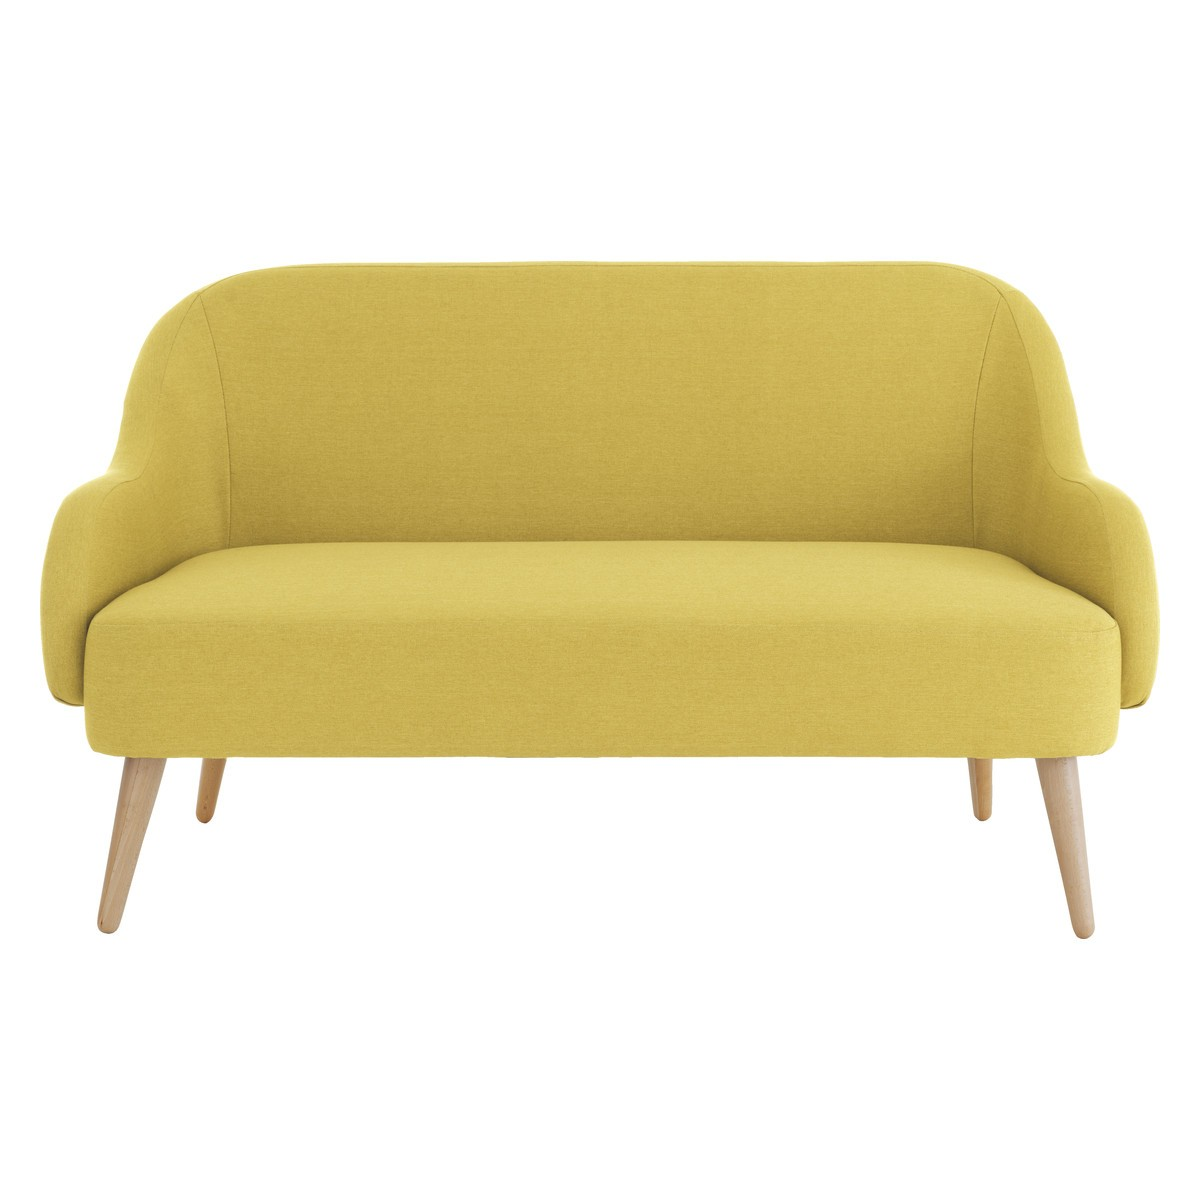 momo saffron yellow fabric 2 seater sofa QCSESMR